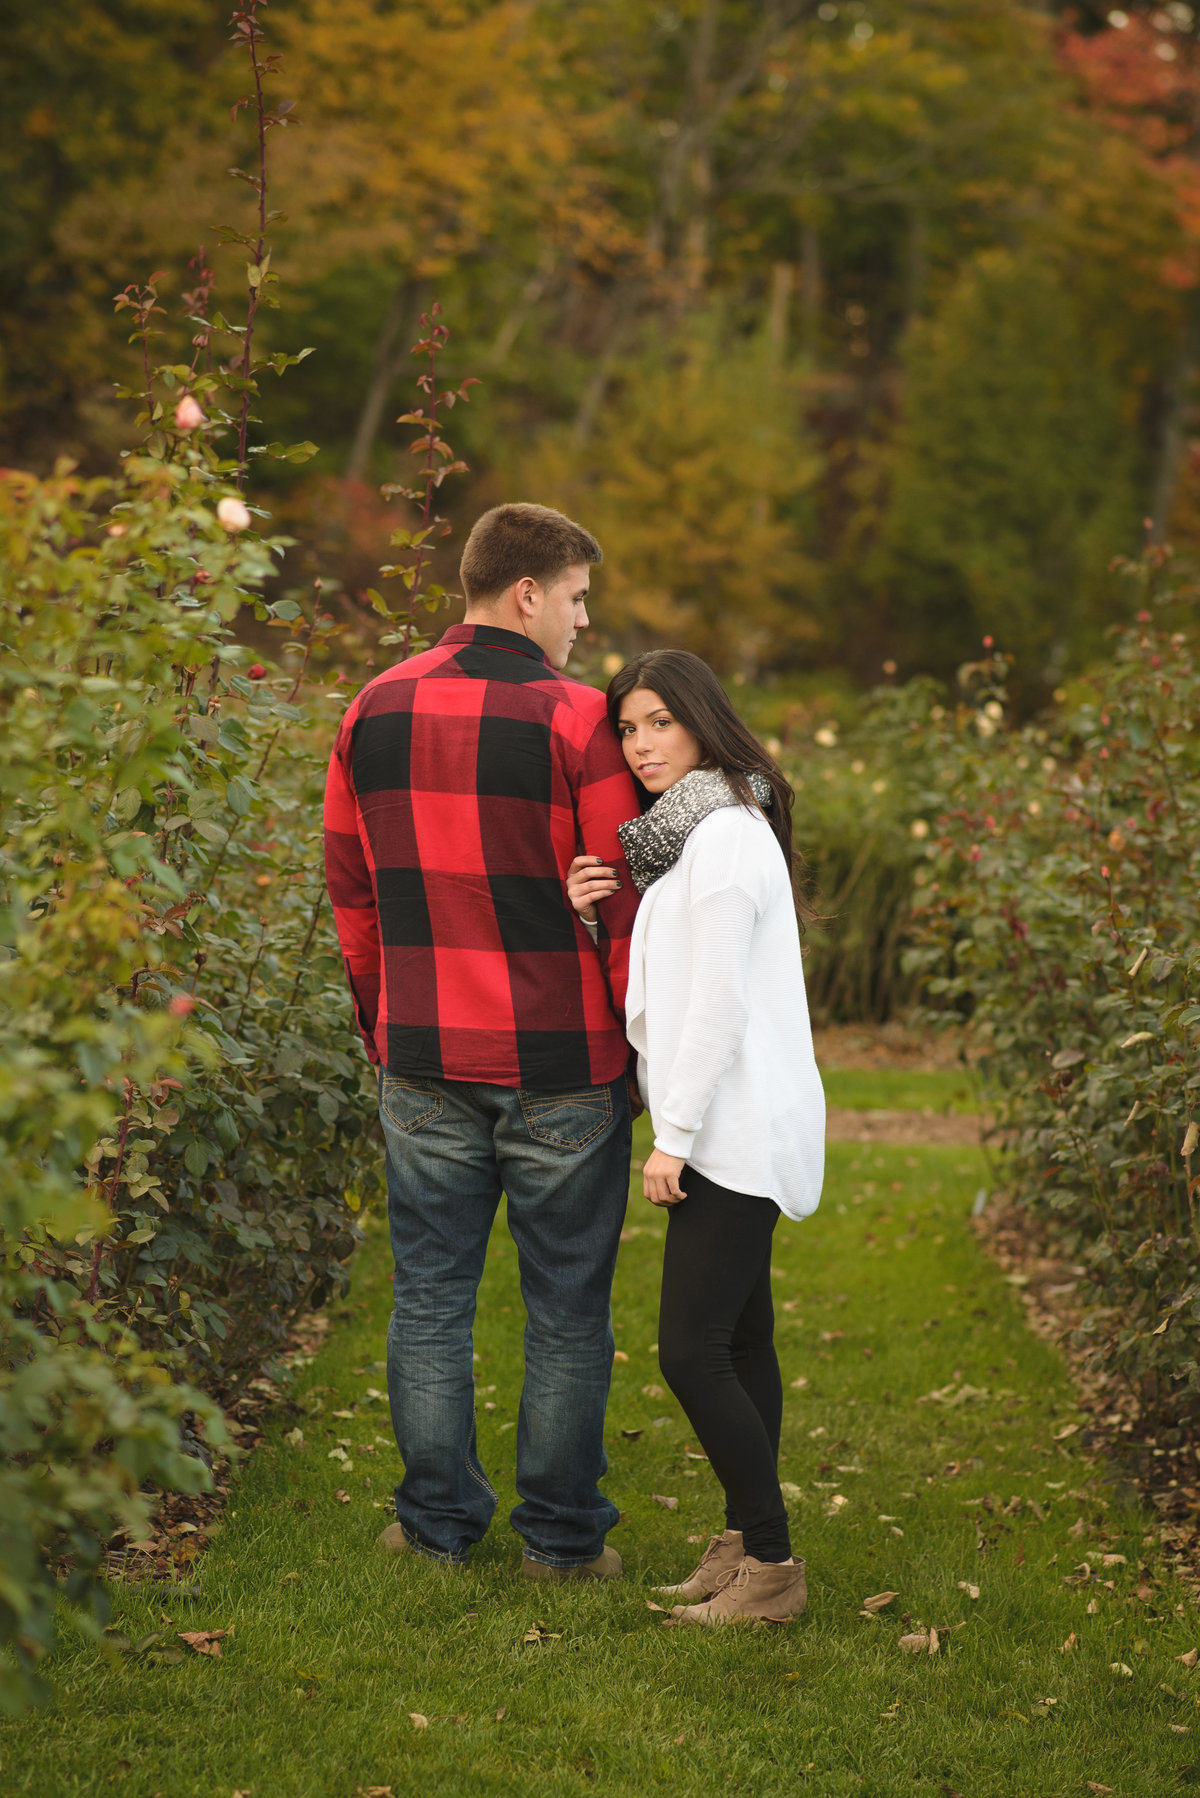 schenectady-central-park-rose-garden-couples-engagement-photography-lauren-kirkham-photography-1